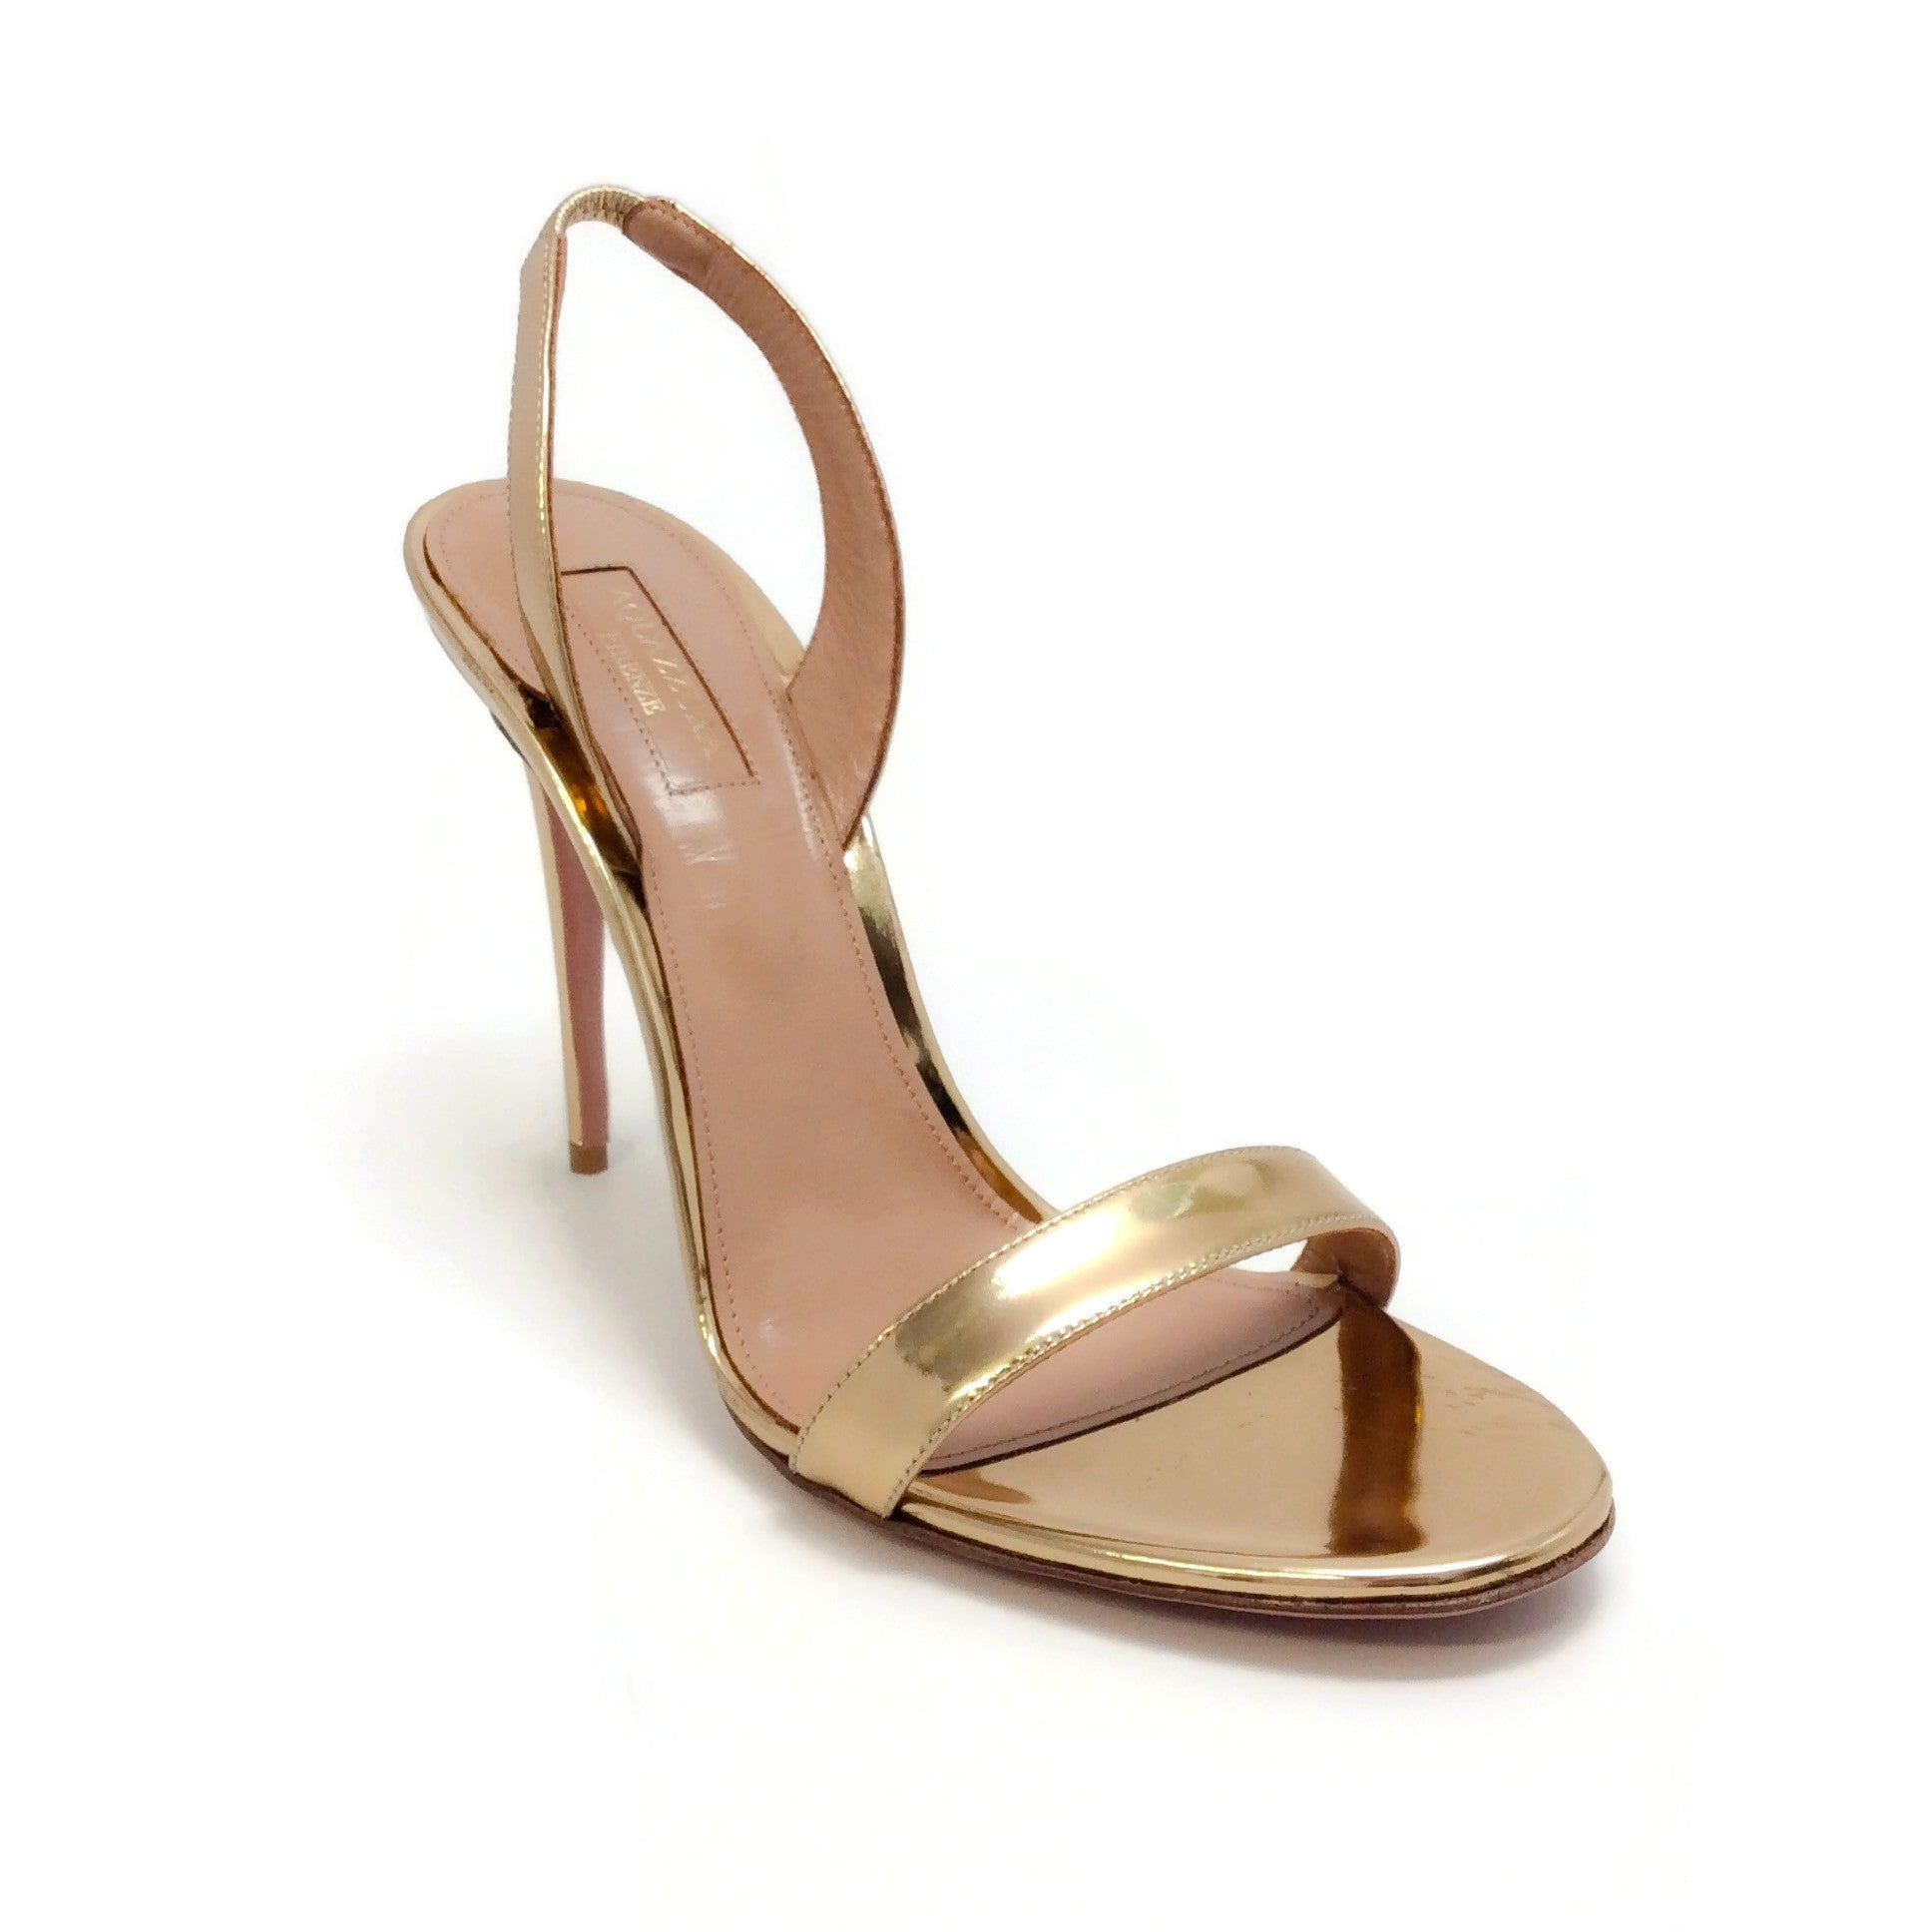 Aquazzura Gold Metallic So Nude Sandals